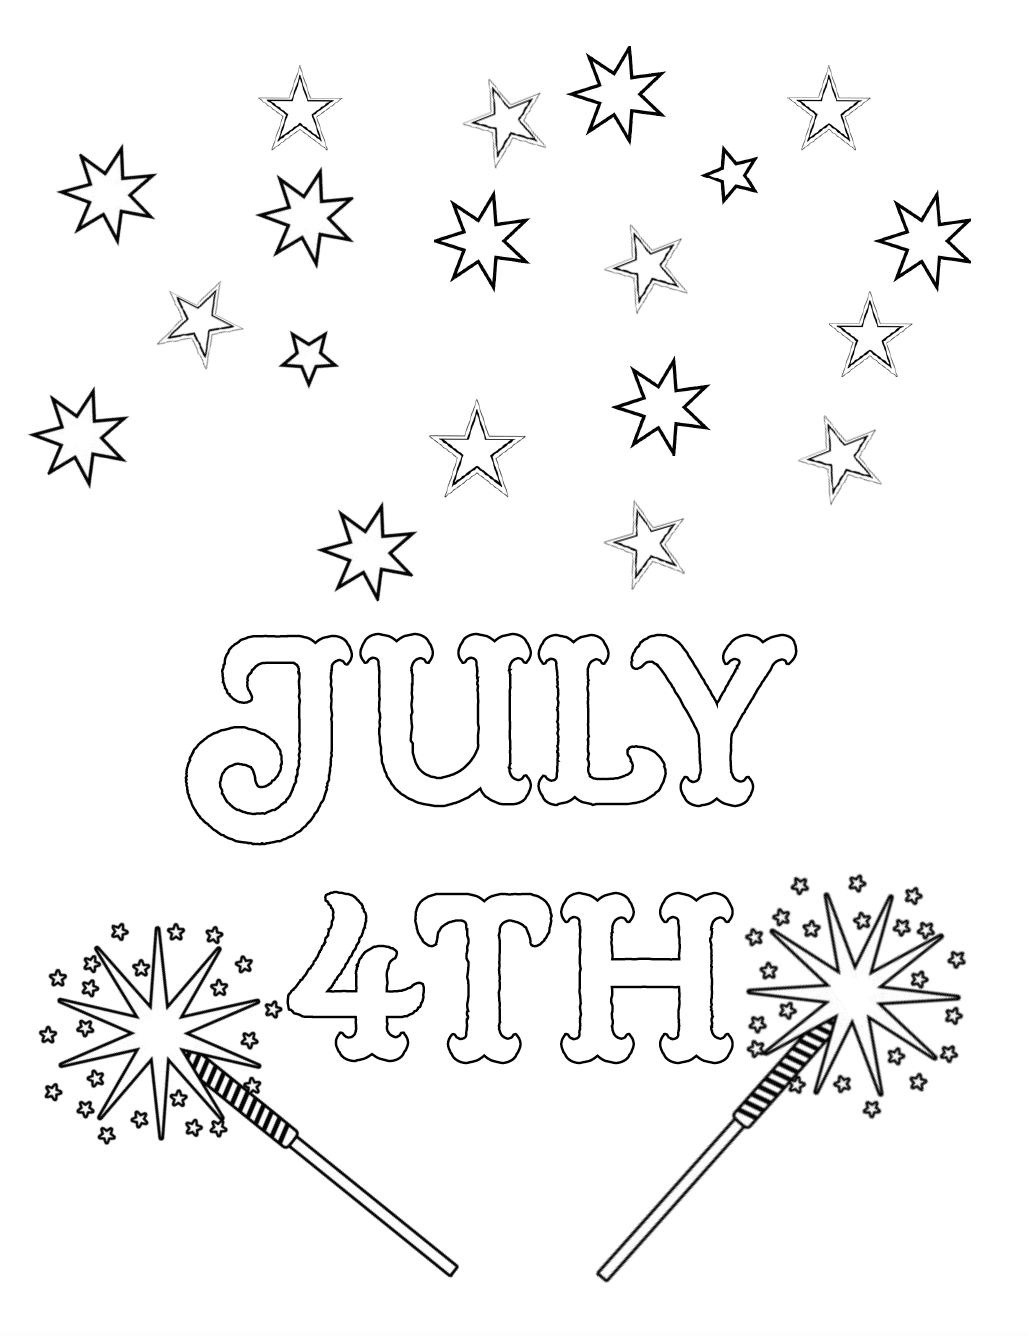 july 4 coloring pages 4th of july coloring pages best coloring pages for kids coloring pages 4 july